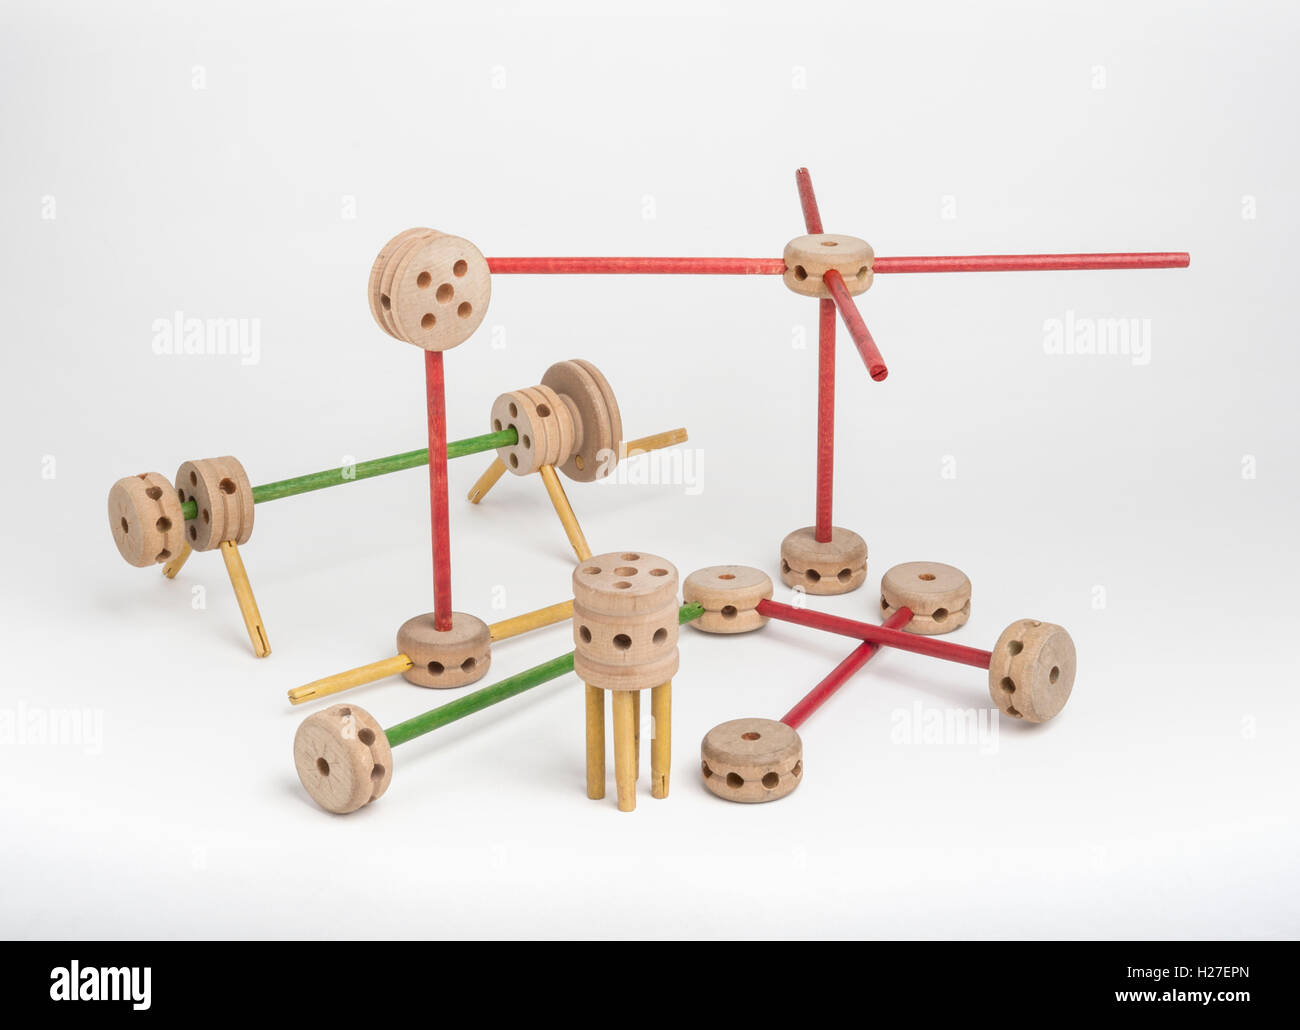 Tinker Toys on White Background - Stock Image